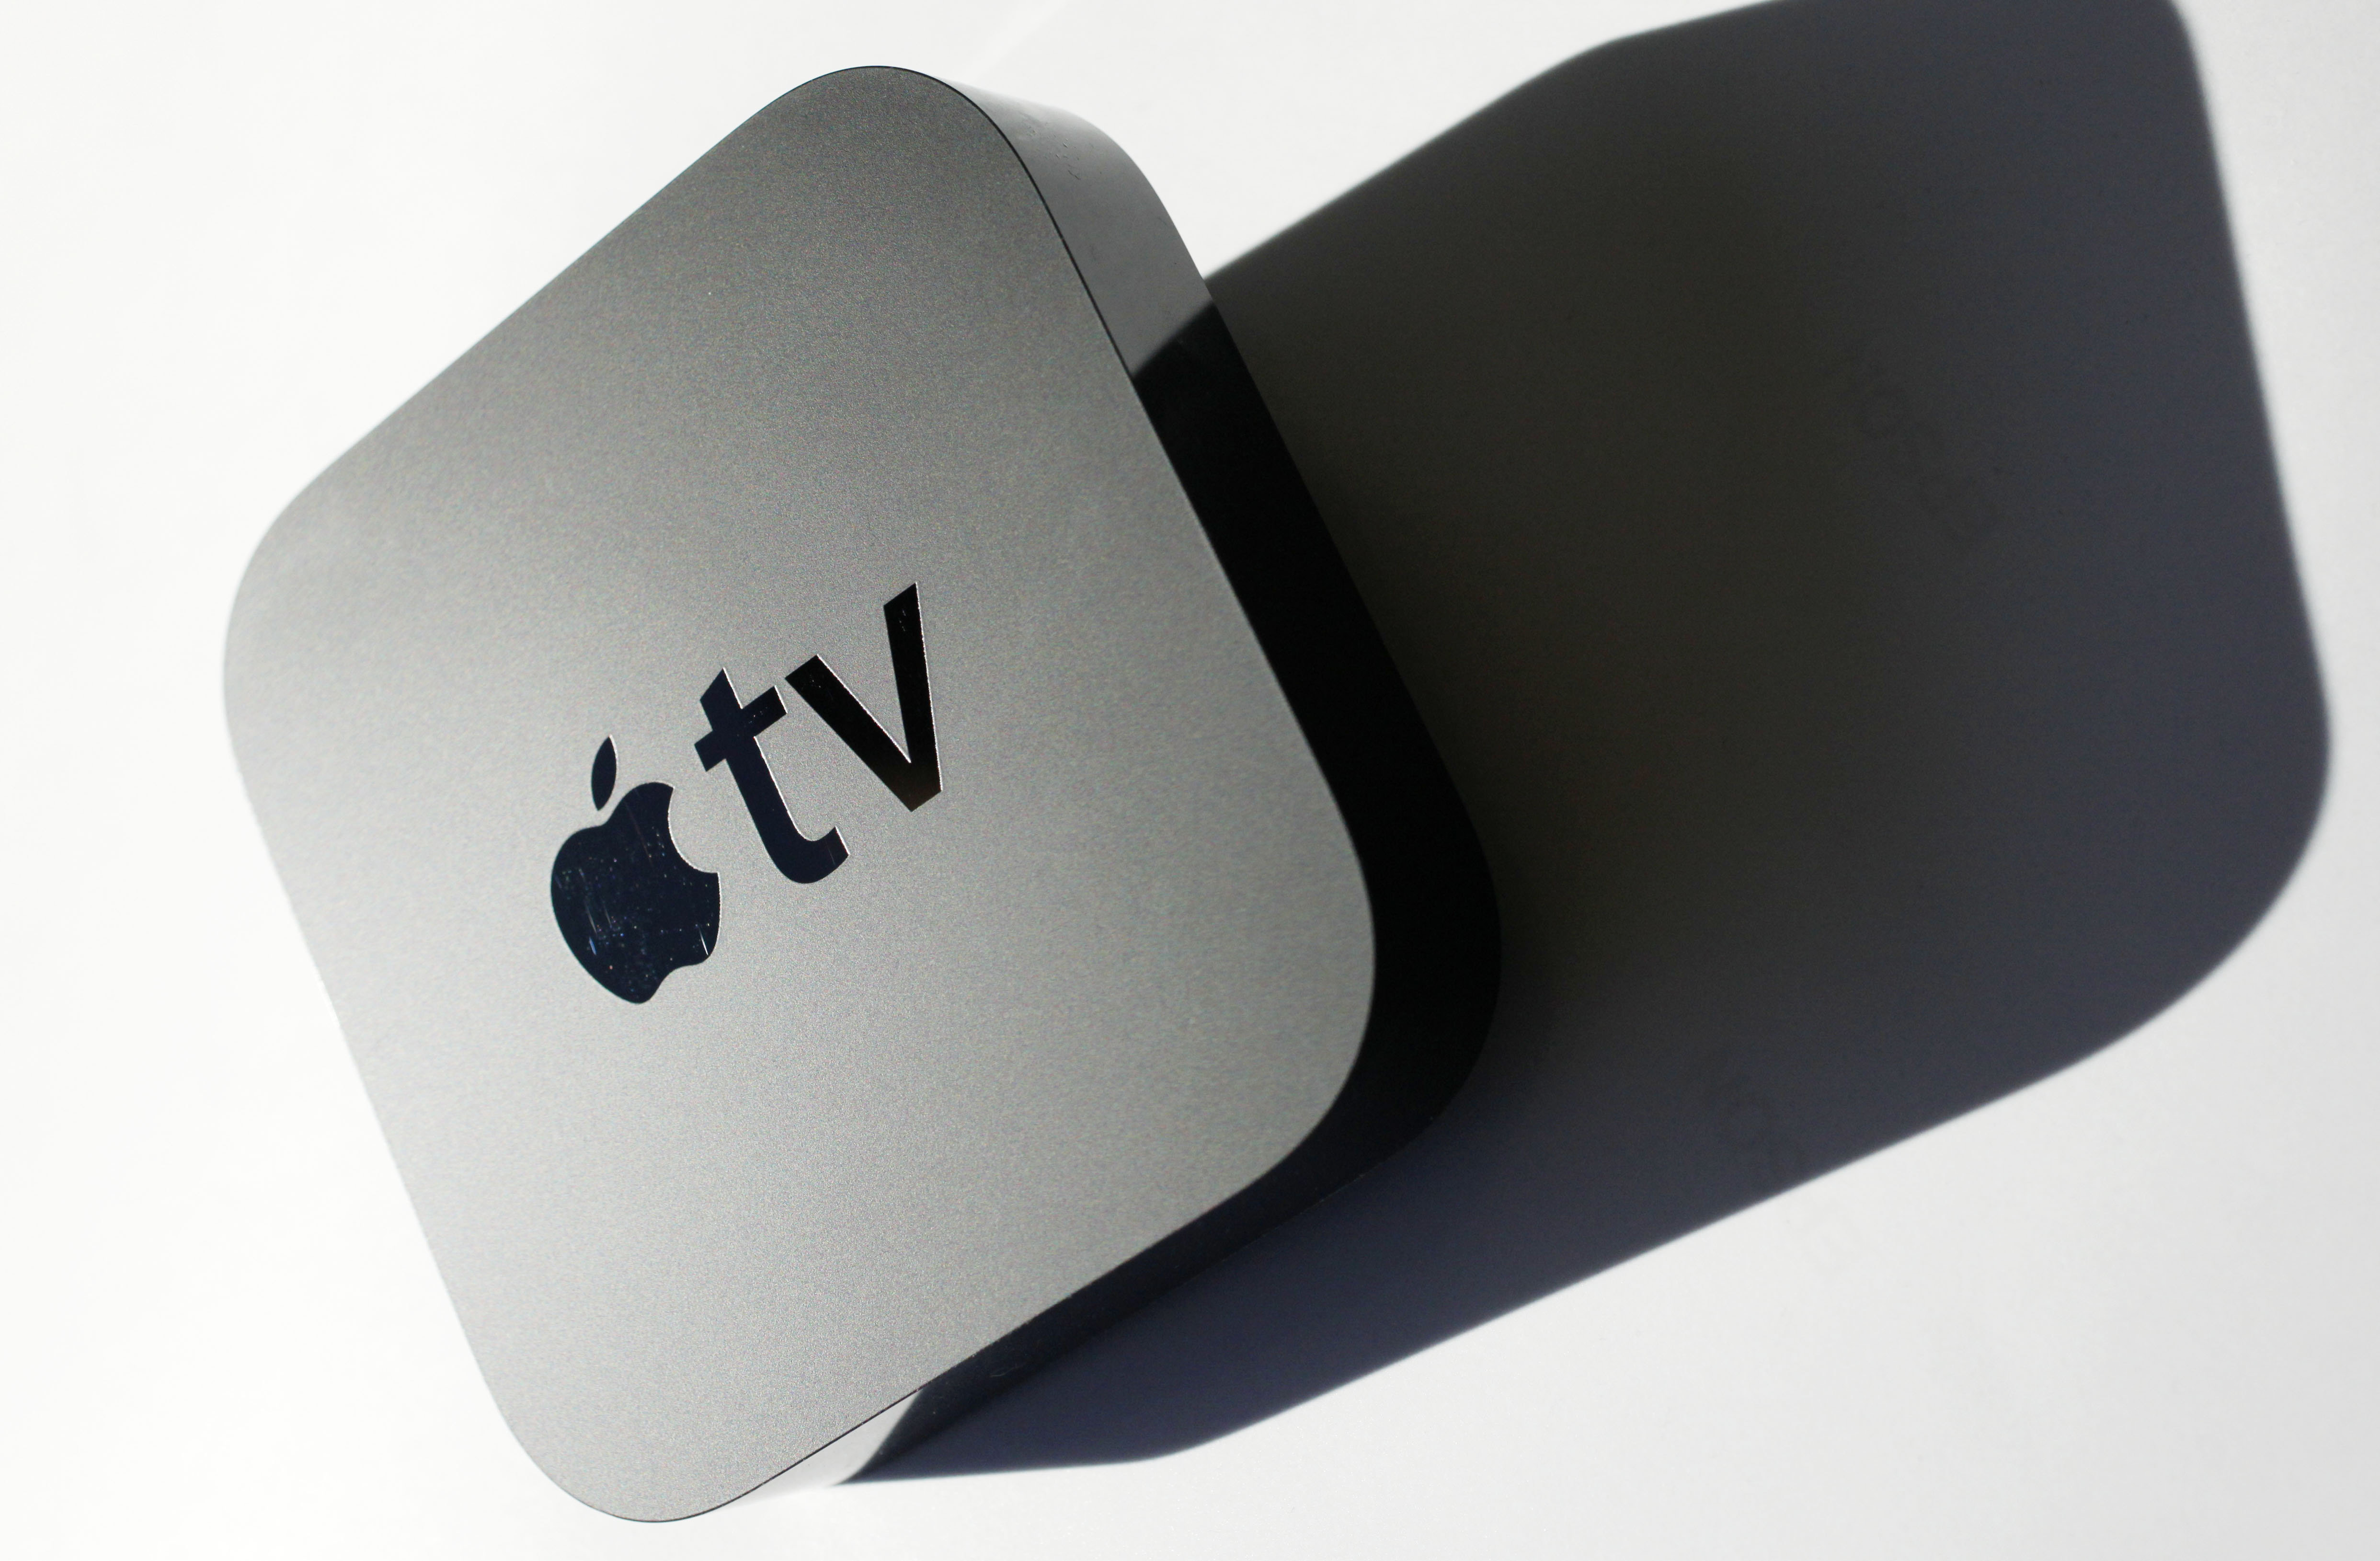 The new Apple TV converter is shown, Wednesday, Oct. 6, 2010 in New York. The device grabs movies and TV show rentals from the Internet and displays them on a TV. It does much the same thing as the older Apple TV, but is smaller and costs much less, at $99. (AP Photo/Mark Lennihan)